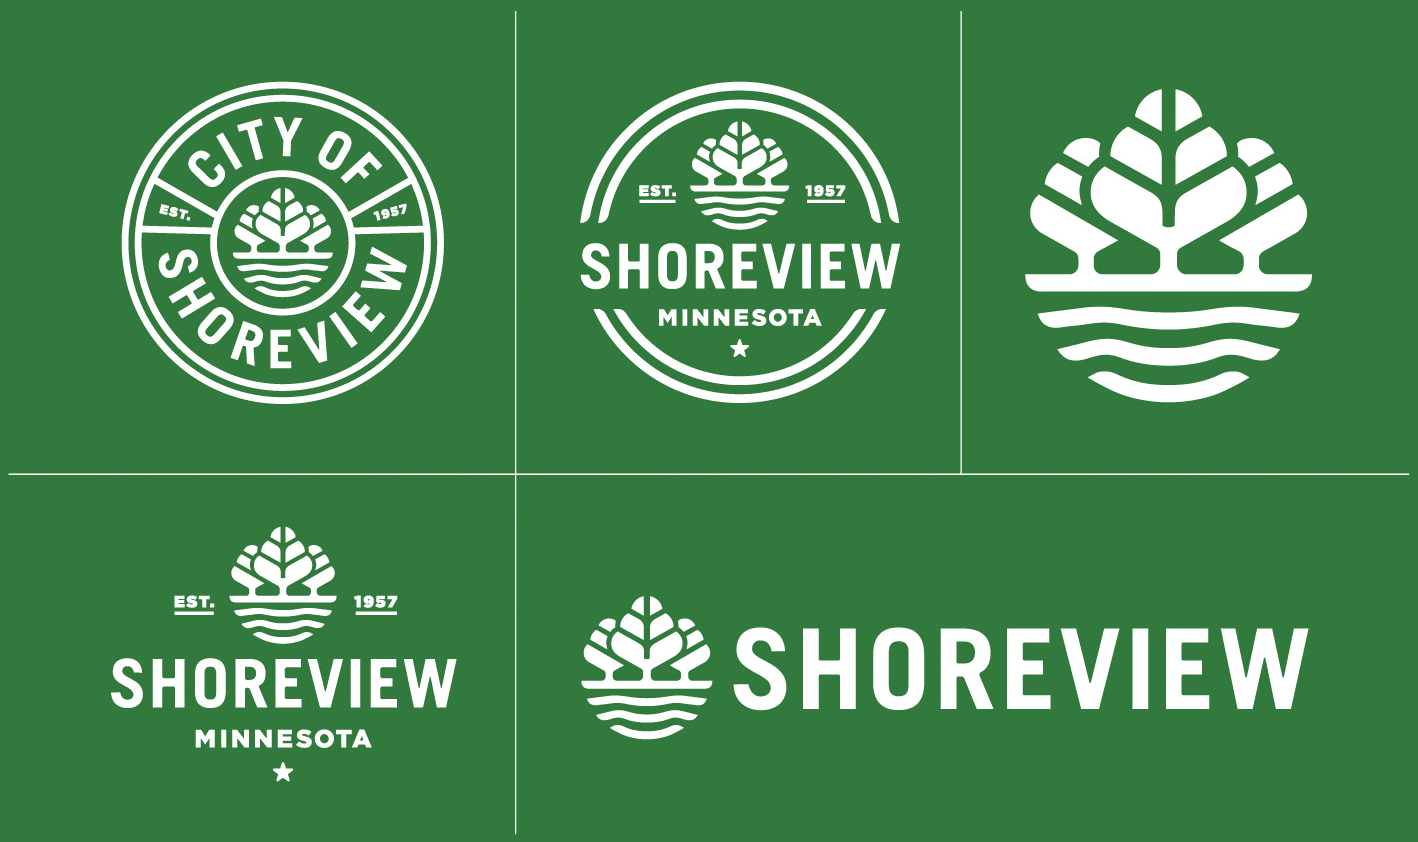 New Logos for Shoreview, MN, by Peters Design Company